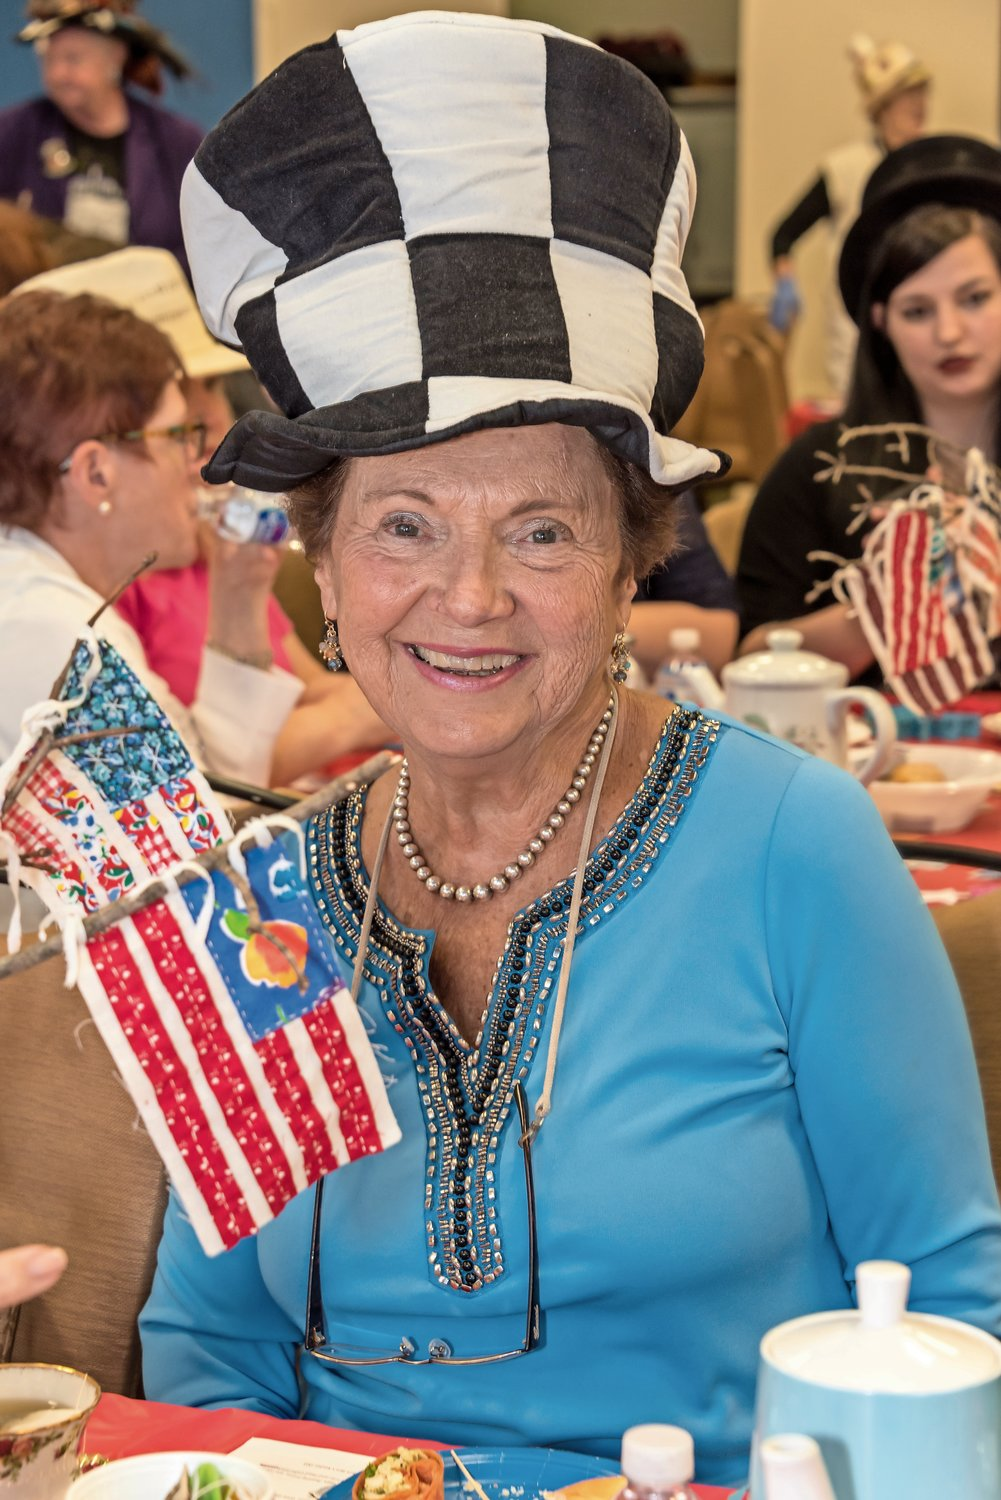 Marion Hahn joined the hat parade after lunch.